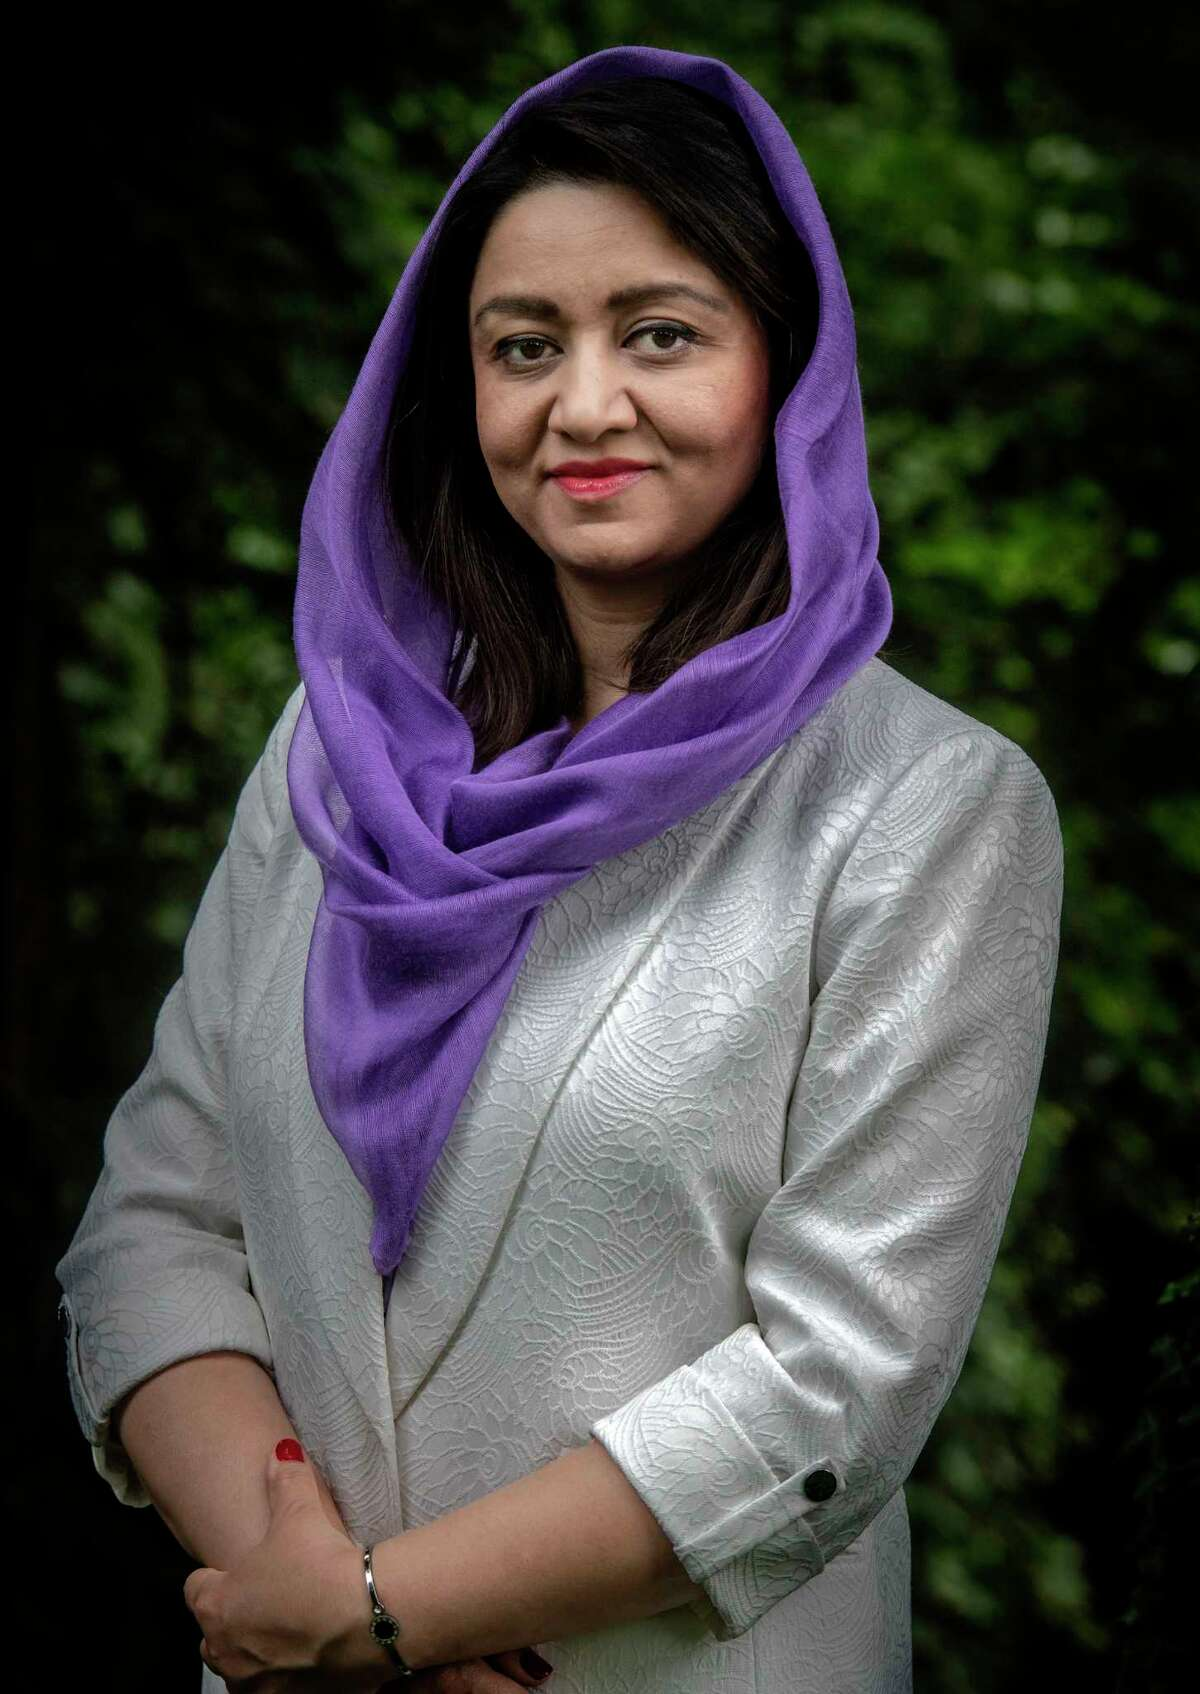 Roya Rahmani's selection as Afghanistan's first female envoy to Washington was seen as heralding a new era for Afghan women. After being removed from her post amid a corruption probe, she says she will not return to her country, where she fears for her life.